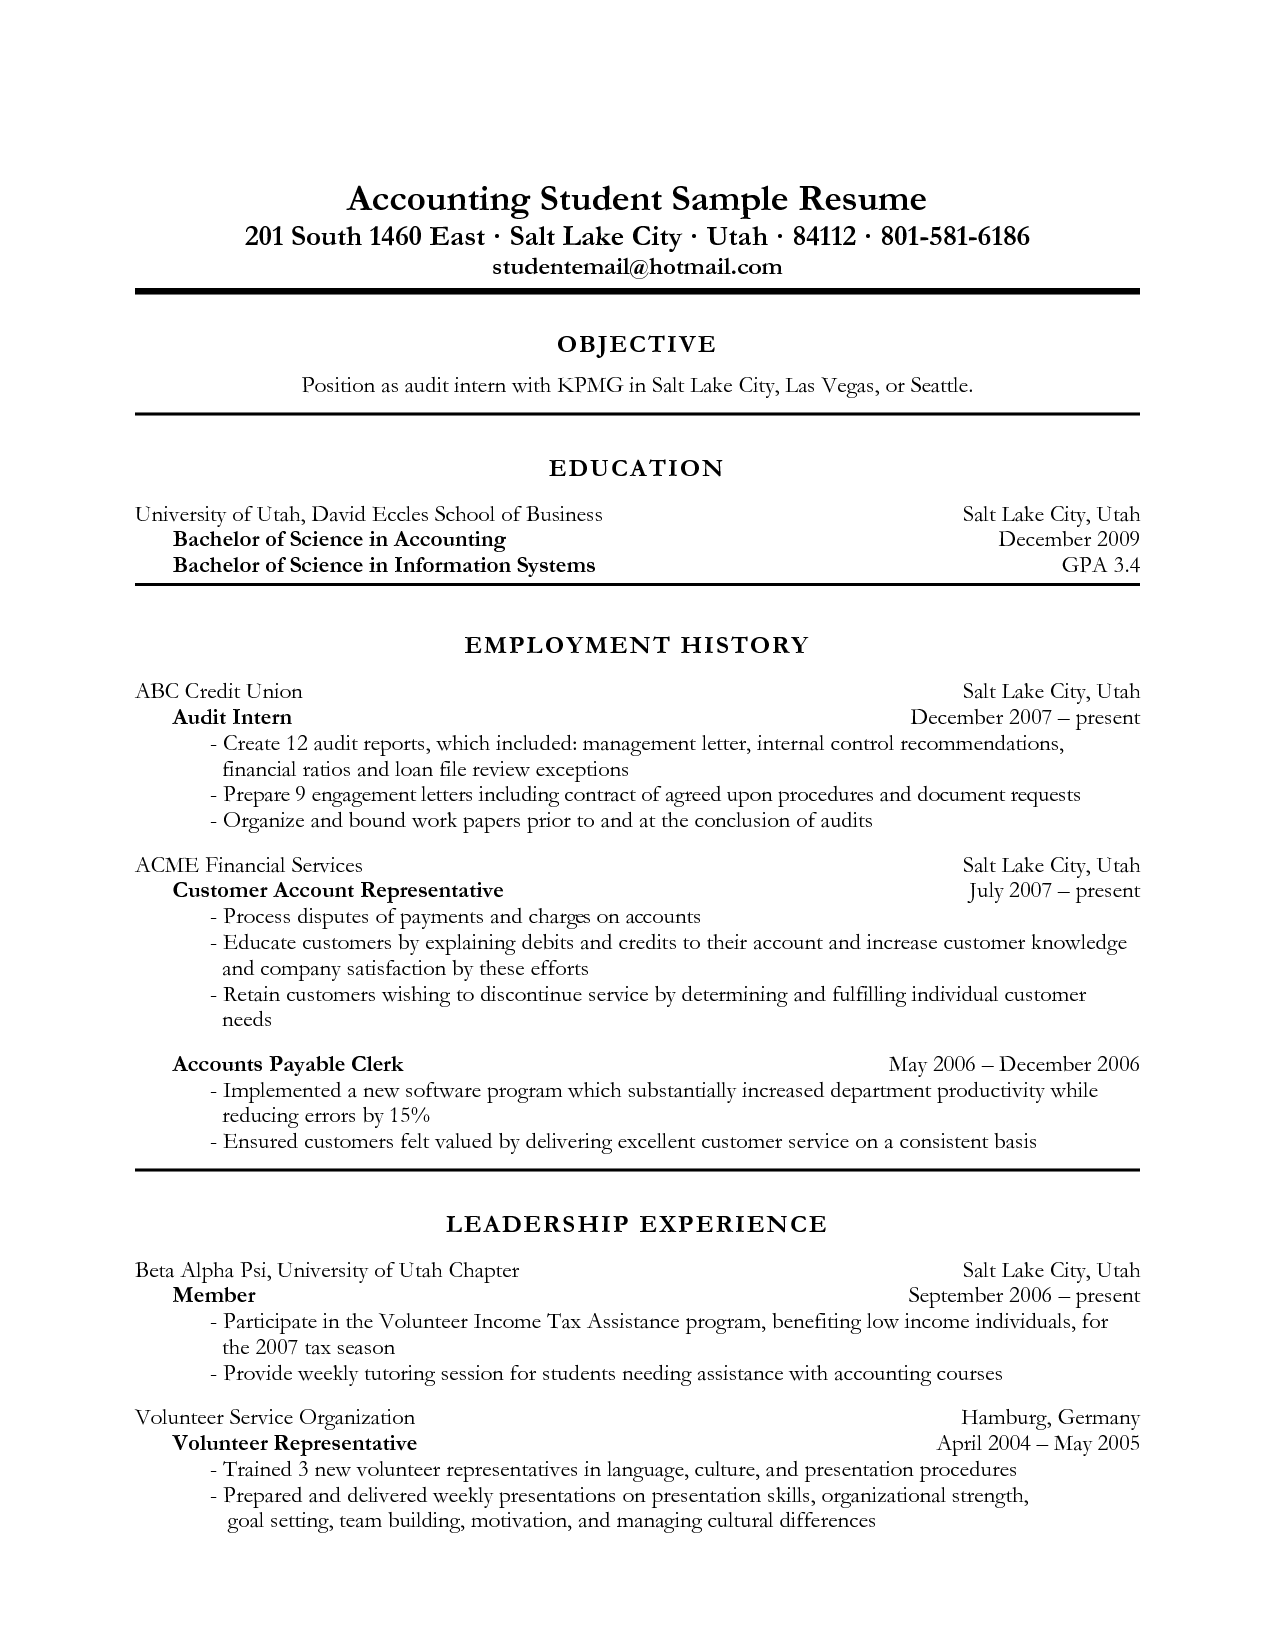 Resume Objectives For Customer Service Accounting Resume Objective Examples  Cover Latter Sample